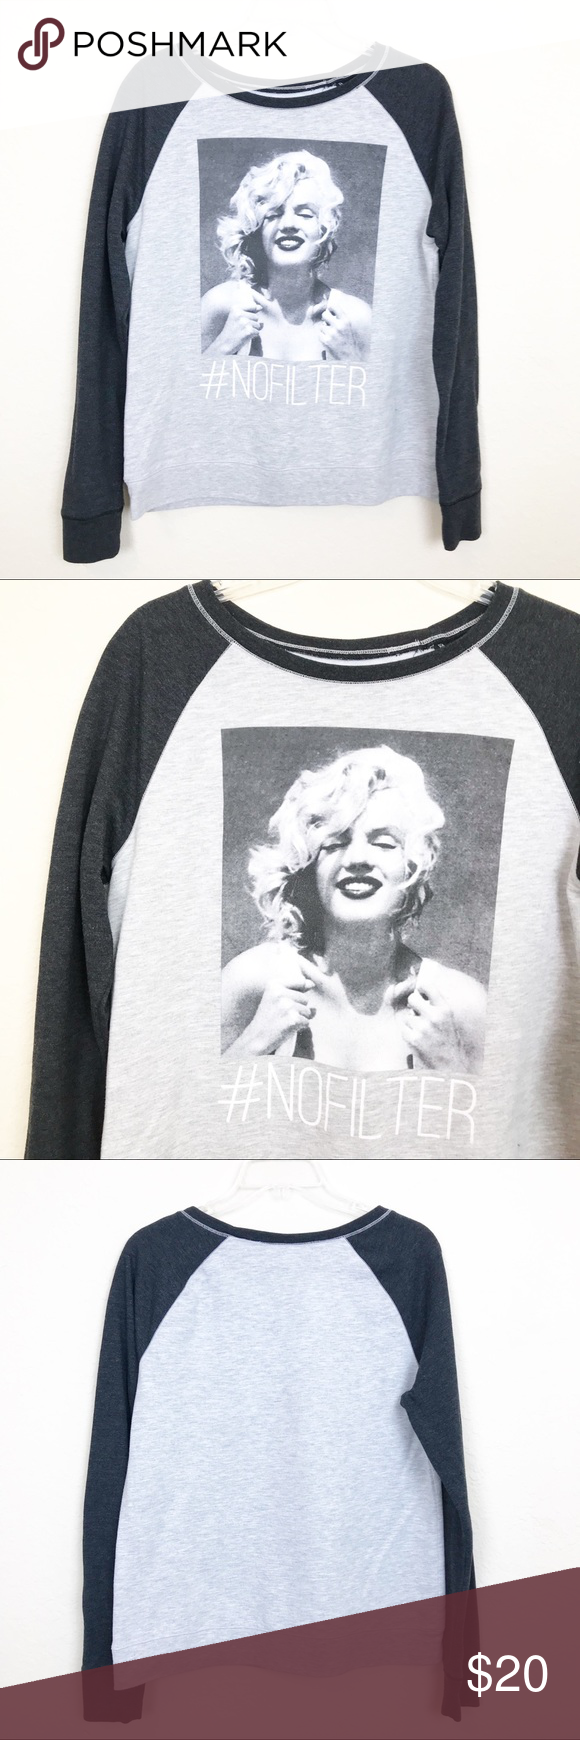 """f01624cb696 Marilyn Monroe Graphic Crewneck Sweatshirt Large Marilyn Monroe Graphic  Crewneck Sweatshirt Size large """" Nofilter"""